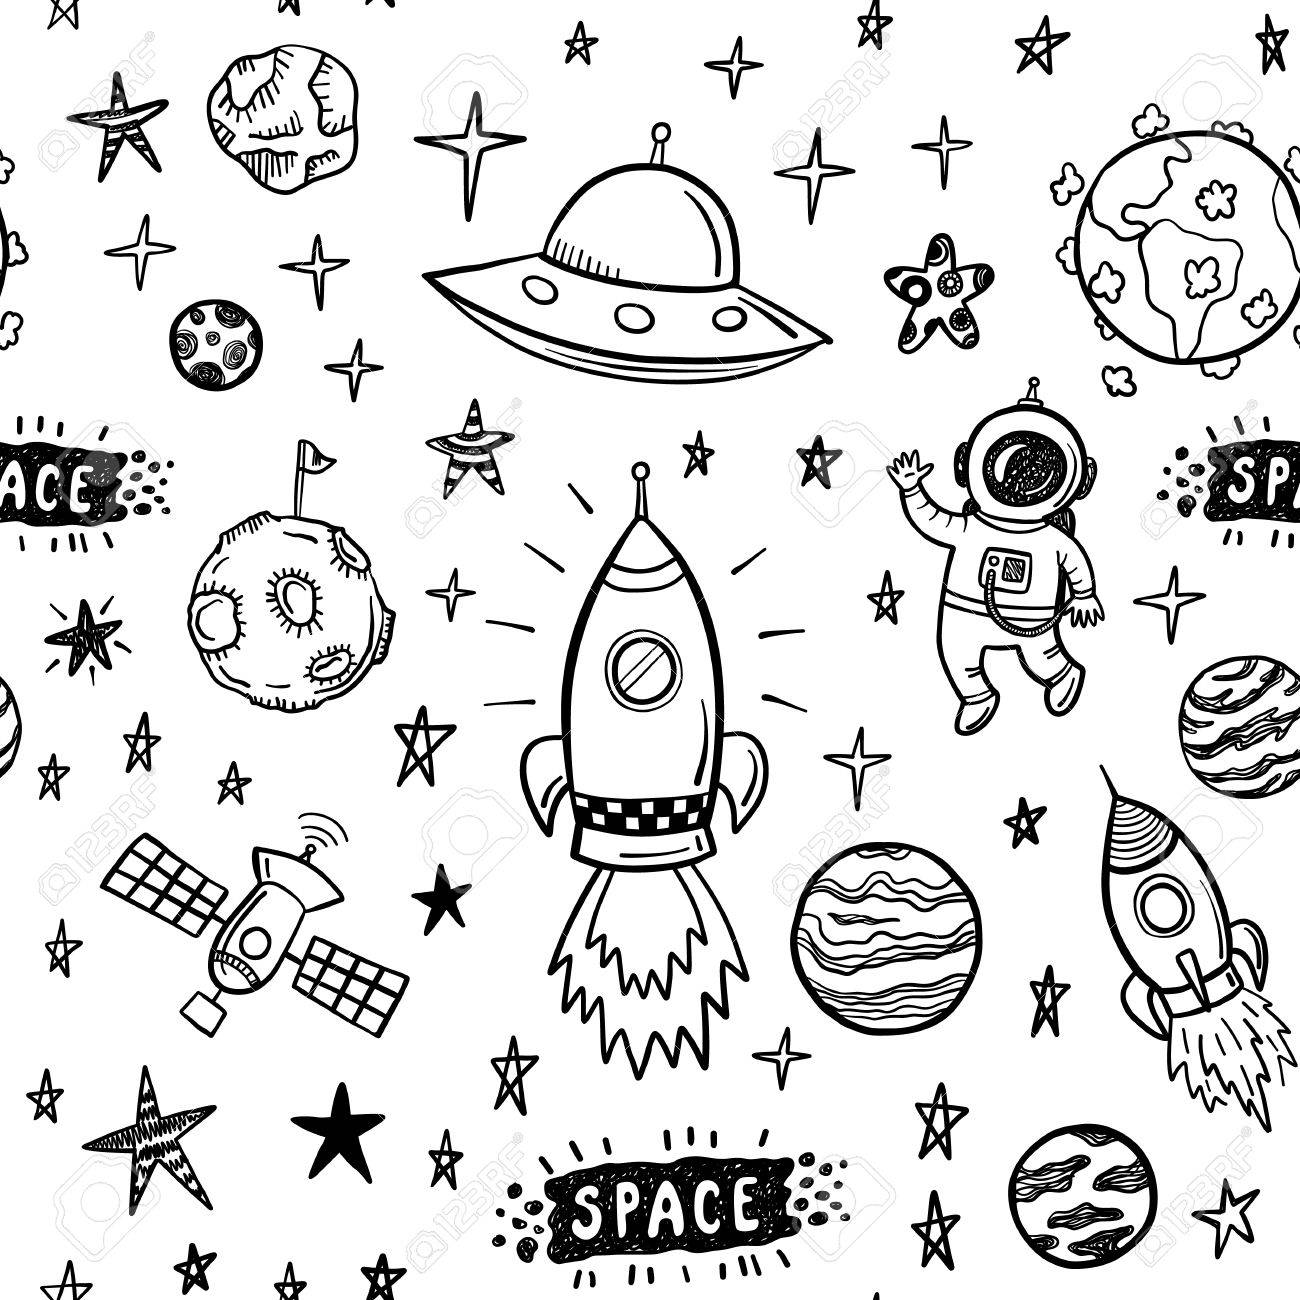 doodle space seamless pattern - 54335199